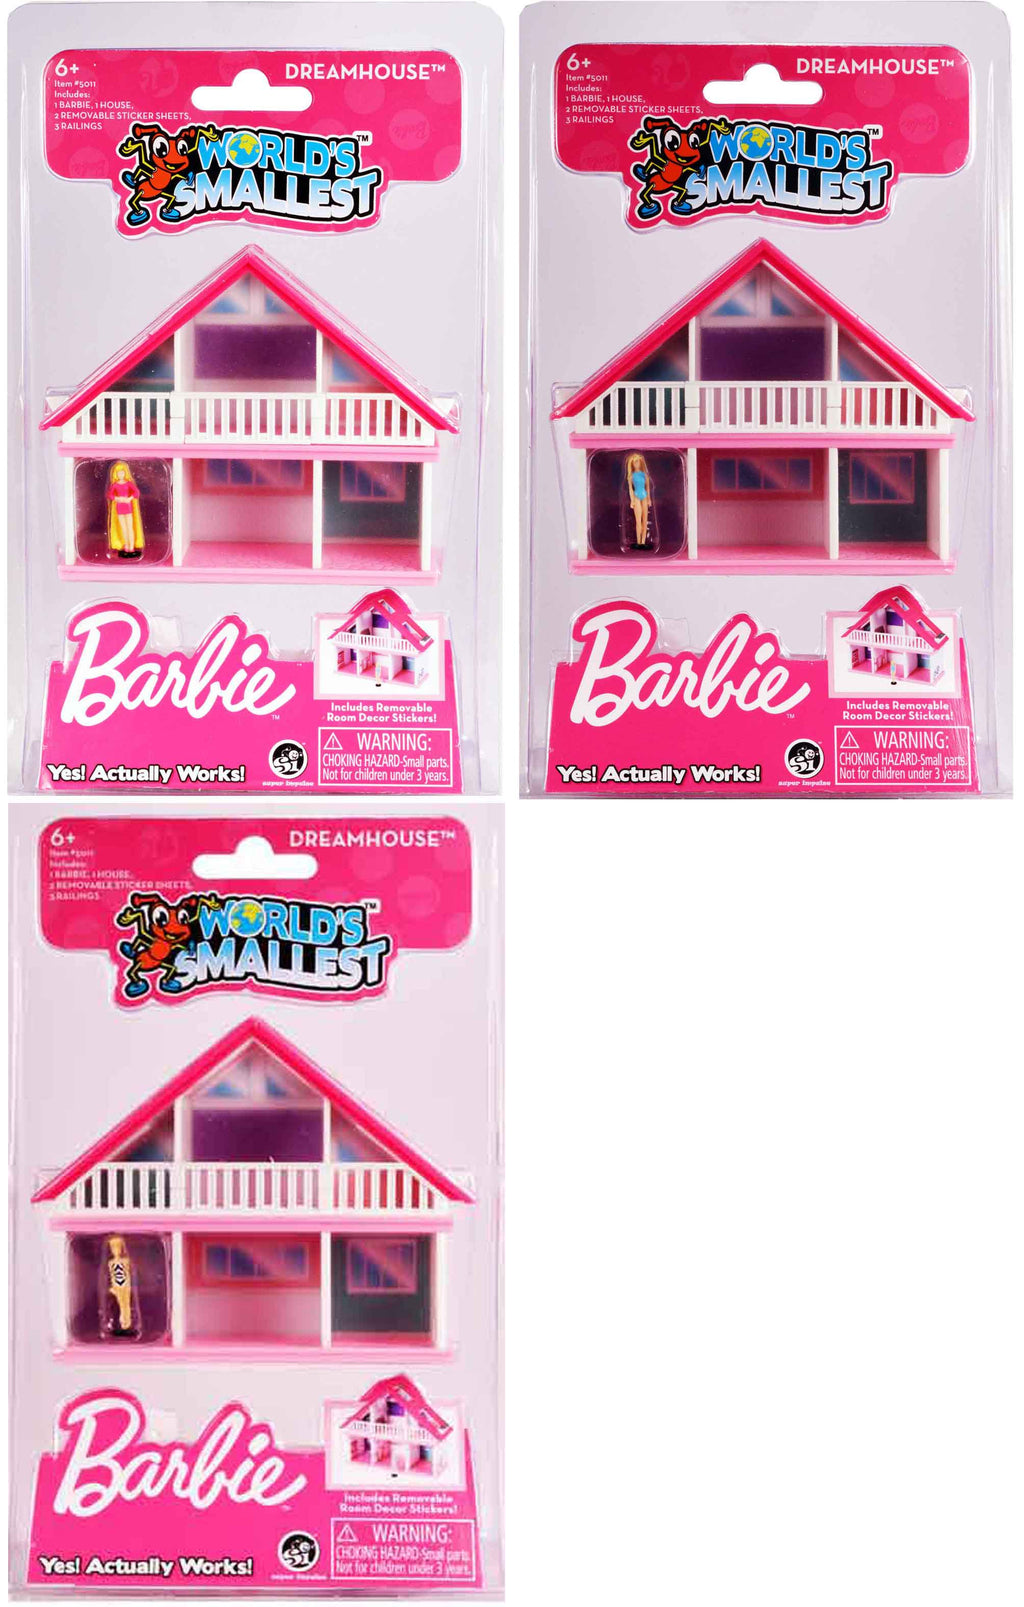 World S Smallest Barbie Dreamhouse Bundle Of All 3 Barbie